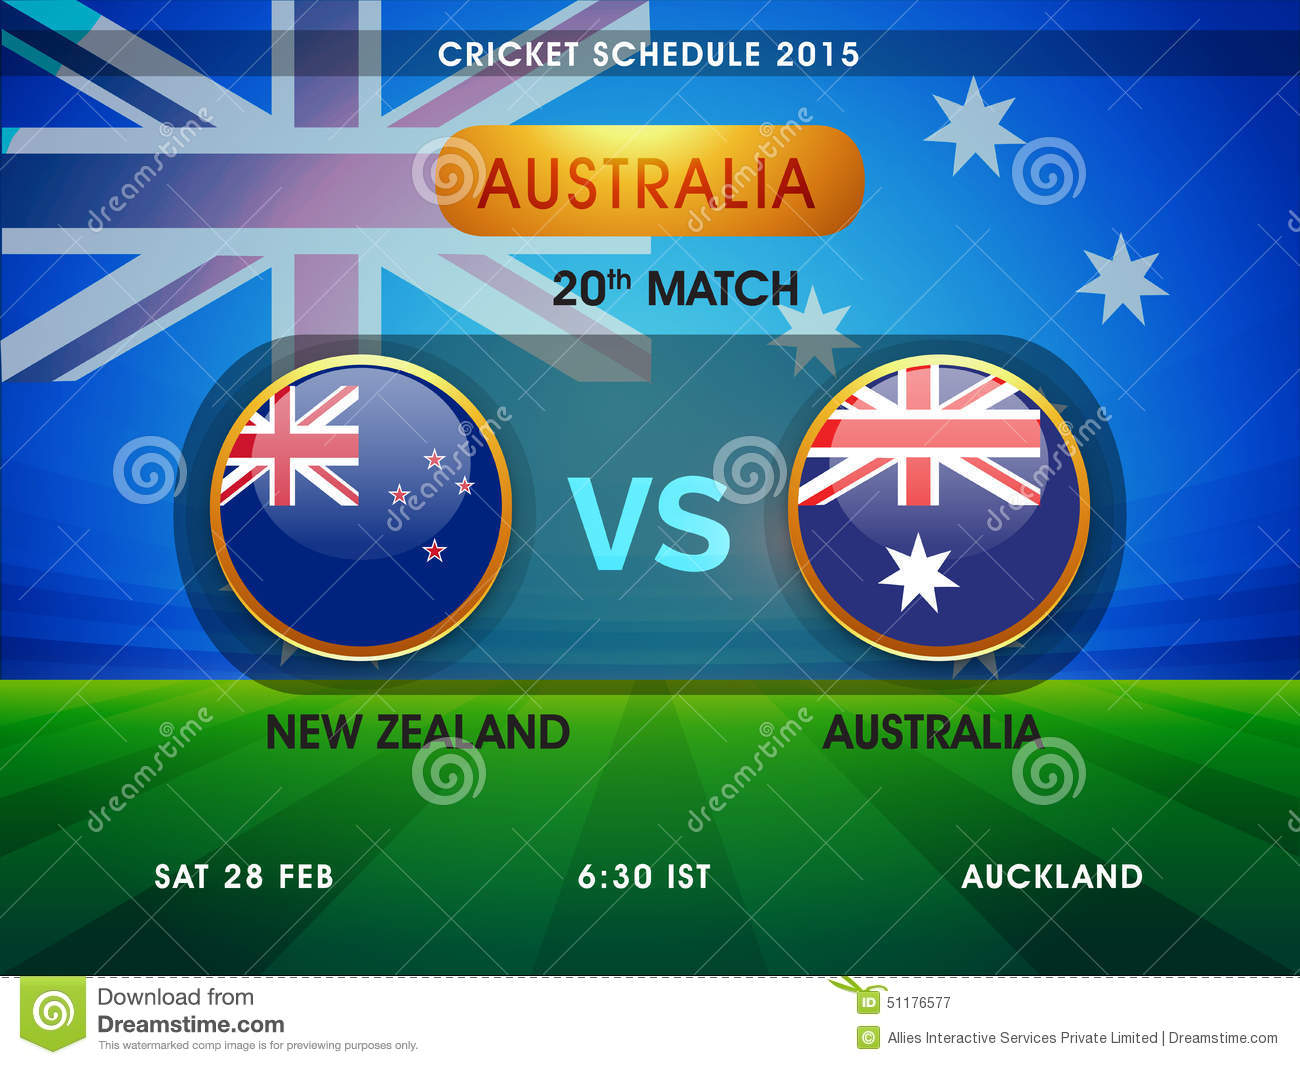 Datetime date in Australia